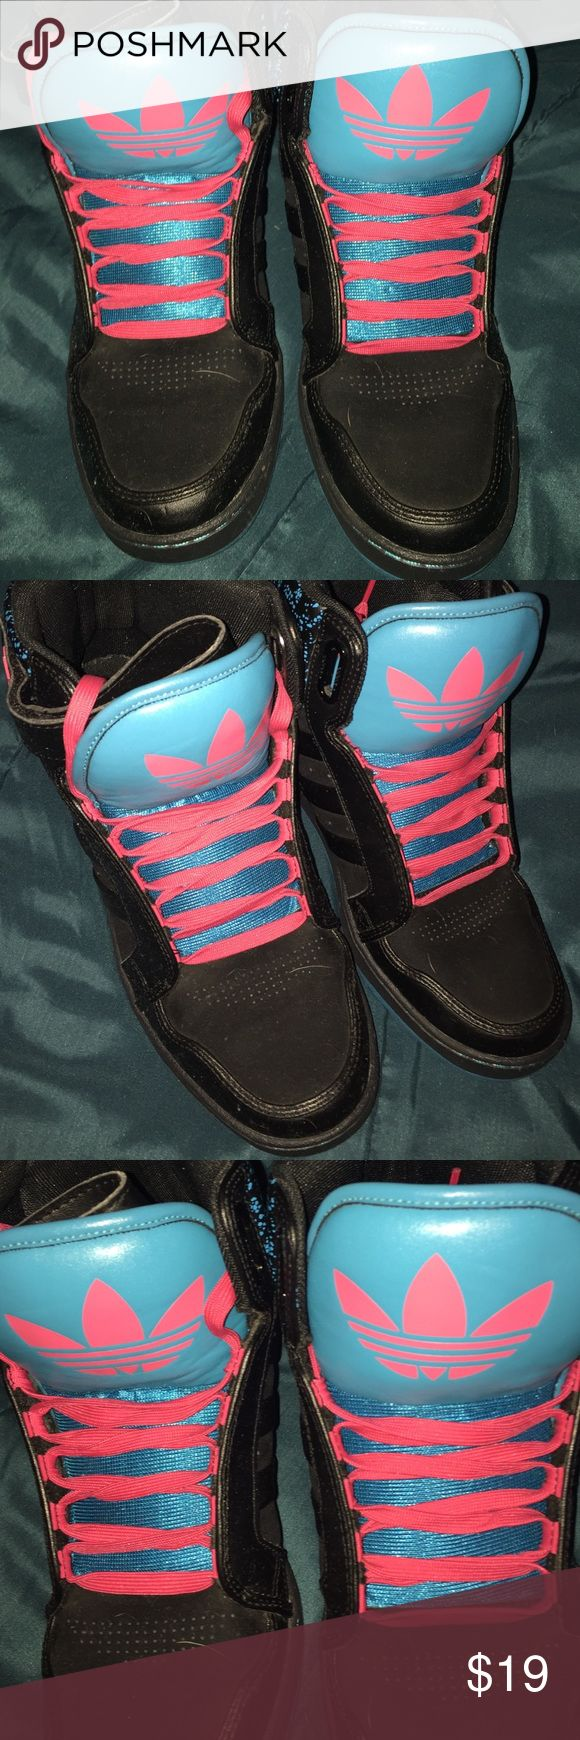 Adidas NEO high tops Adidas NEO Hightops excellent condition US size 10 Adidas Shoes Sneakers